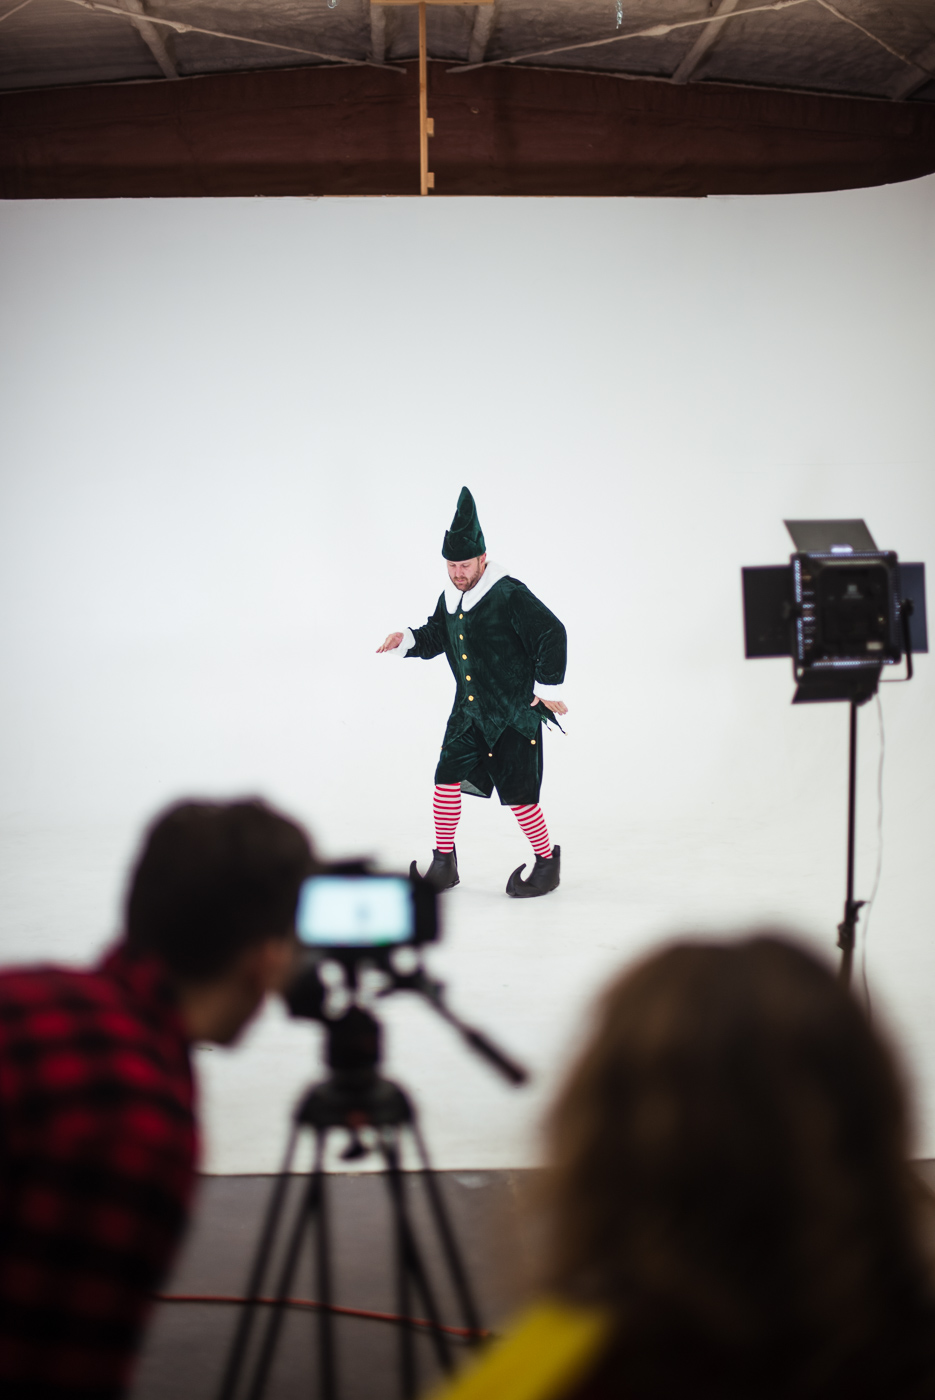 PHOCO Christmas Card The Articulate Photo Studio Cyclorama Infinity Wall Colorado Fort Collins Photographer Elf Yourself BTS-8.jpg